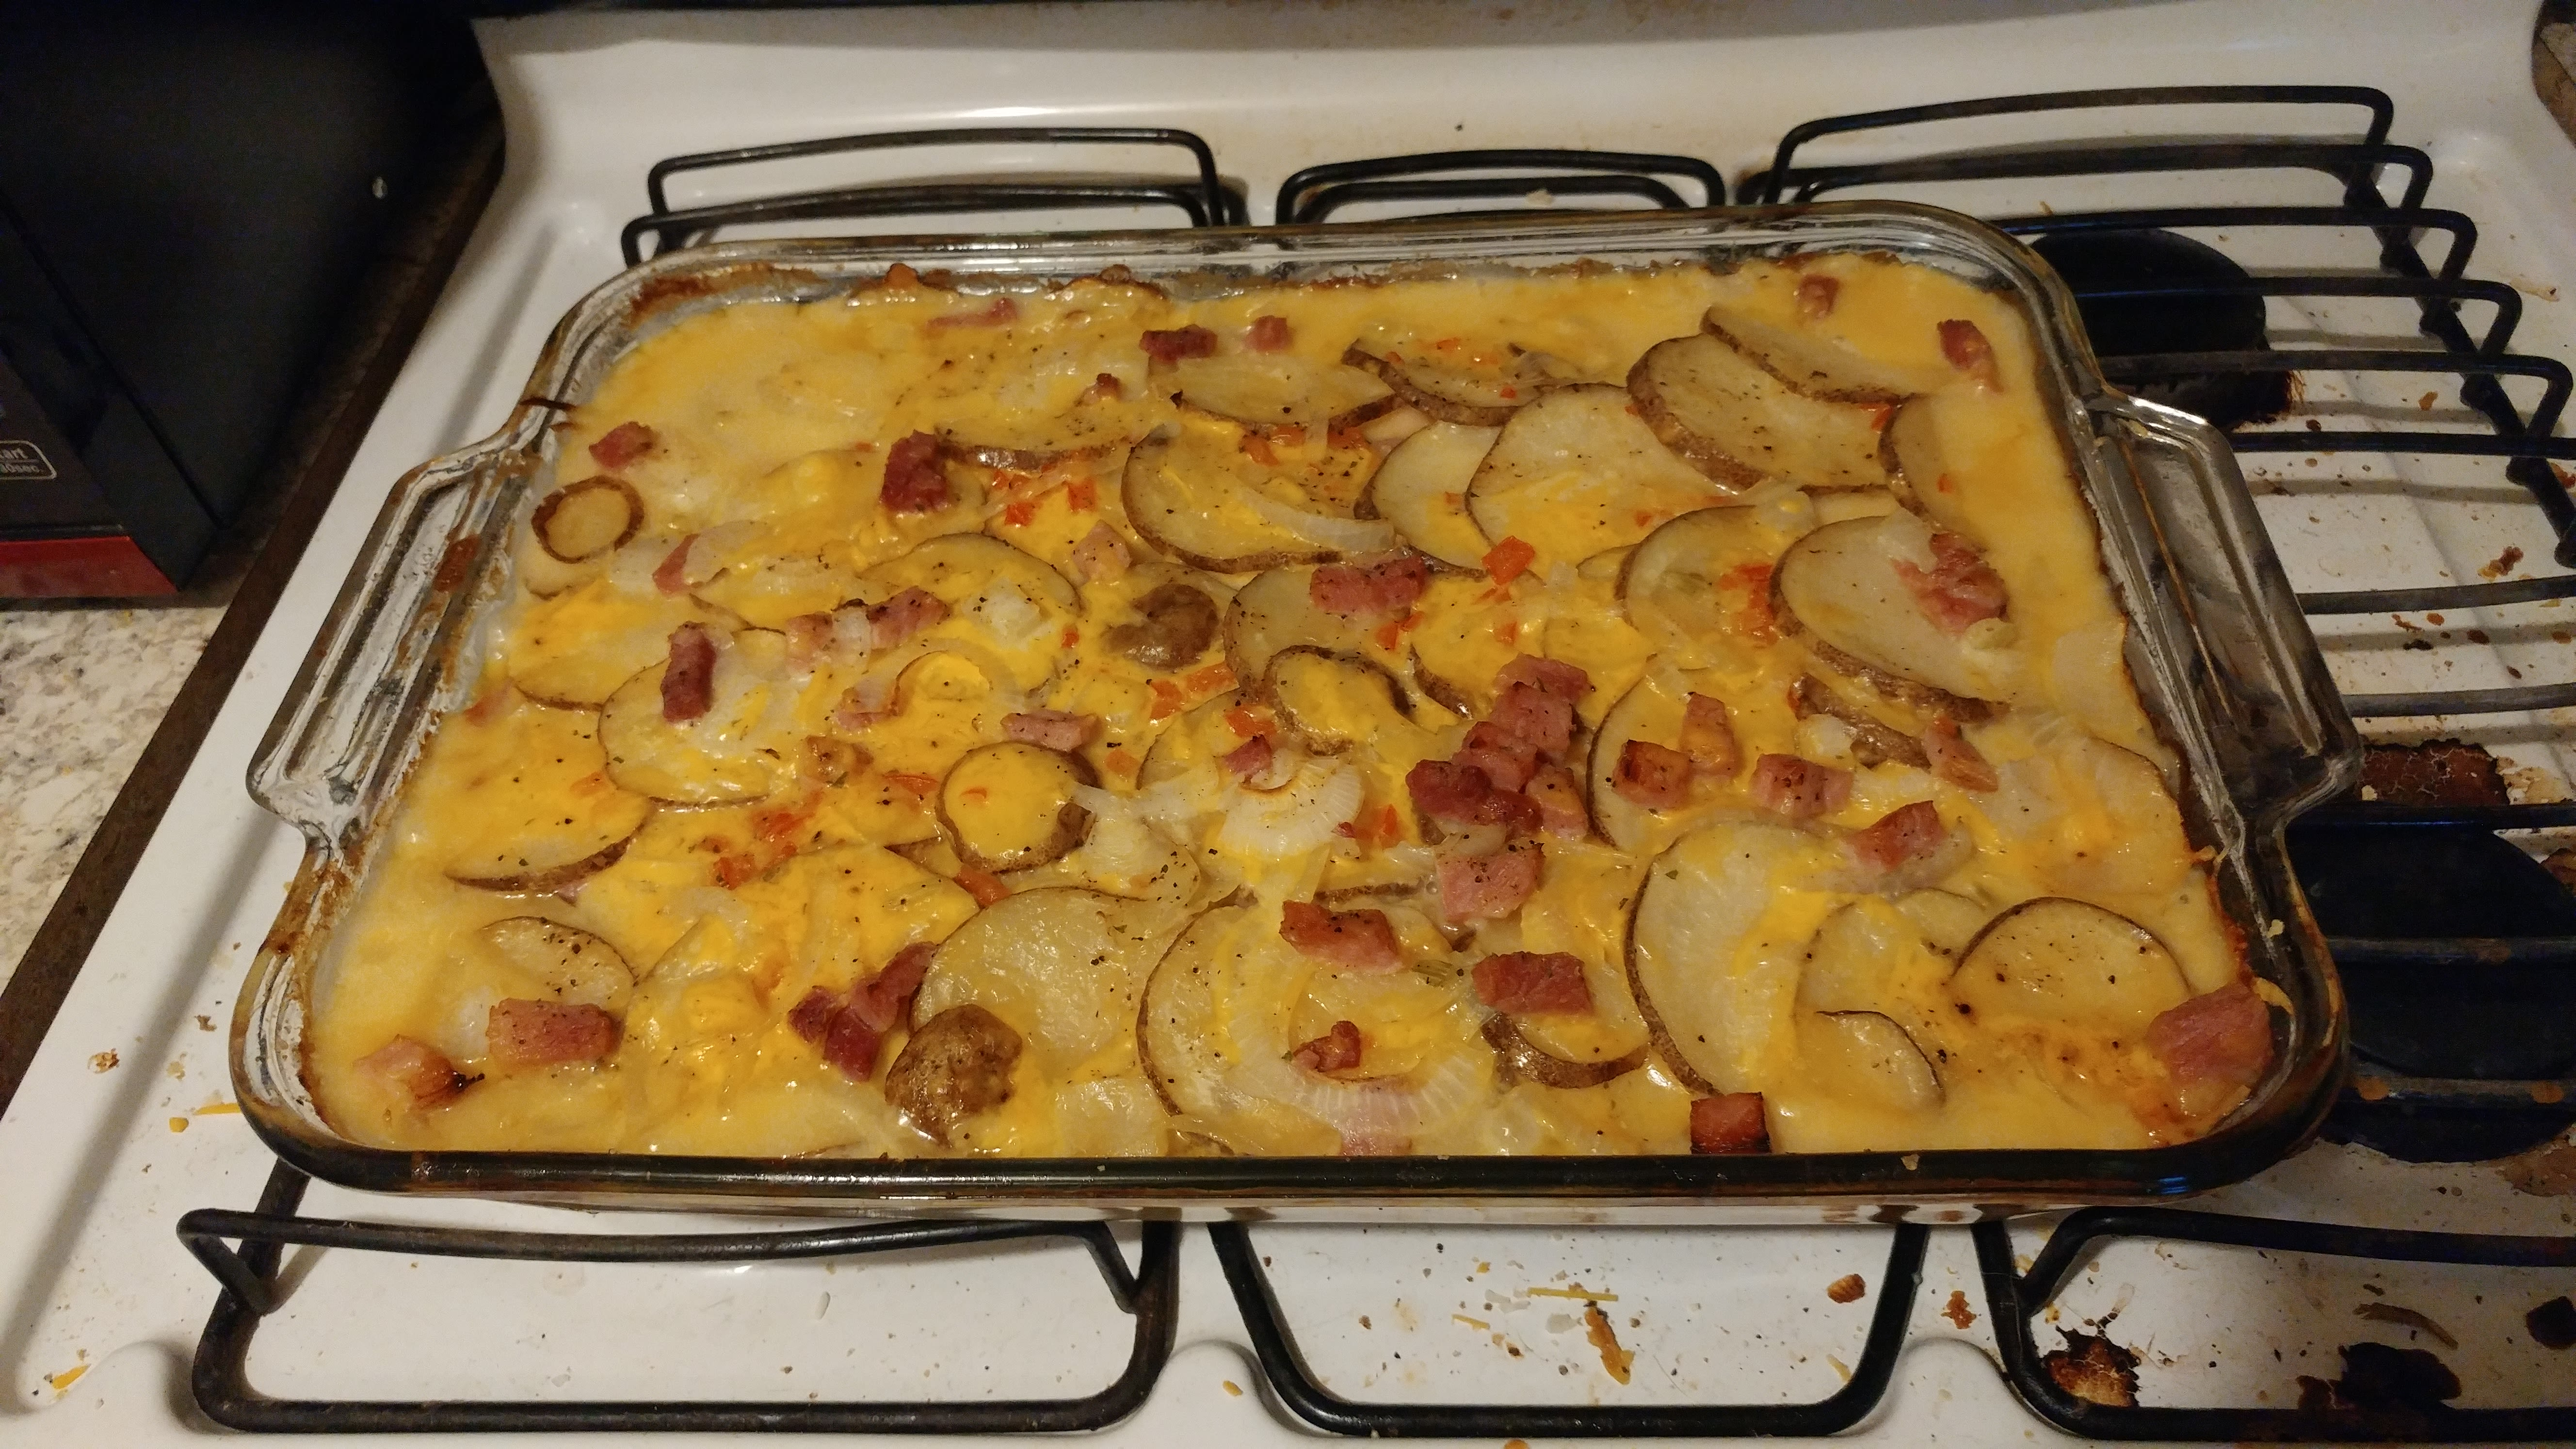 Country scalloped potatoes and ham crock pot recipe genius kitchen cheesy scalloped potatoes ham forumfinder Images